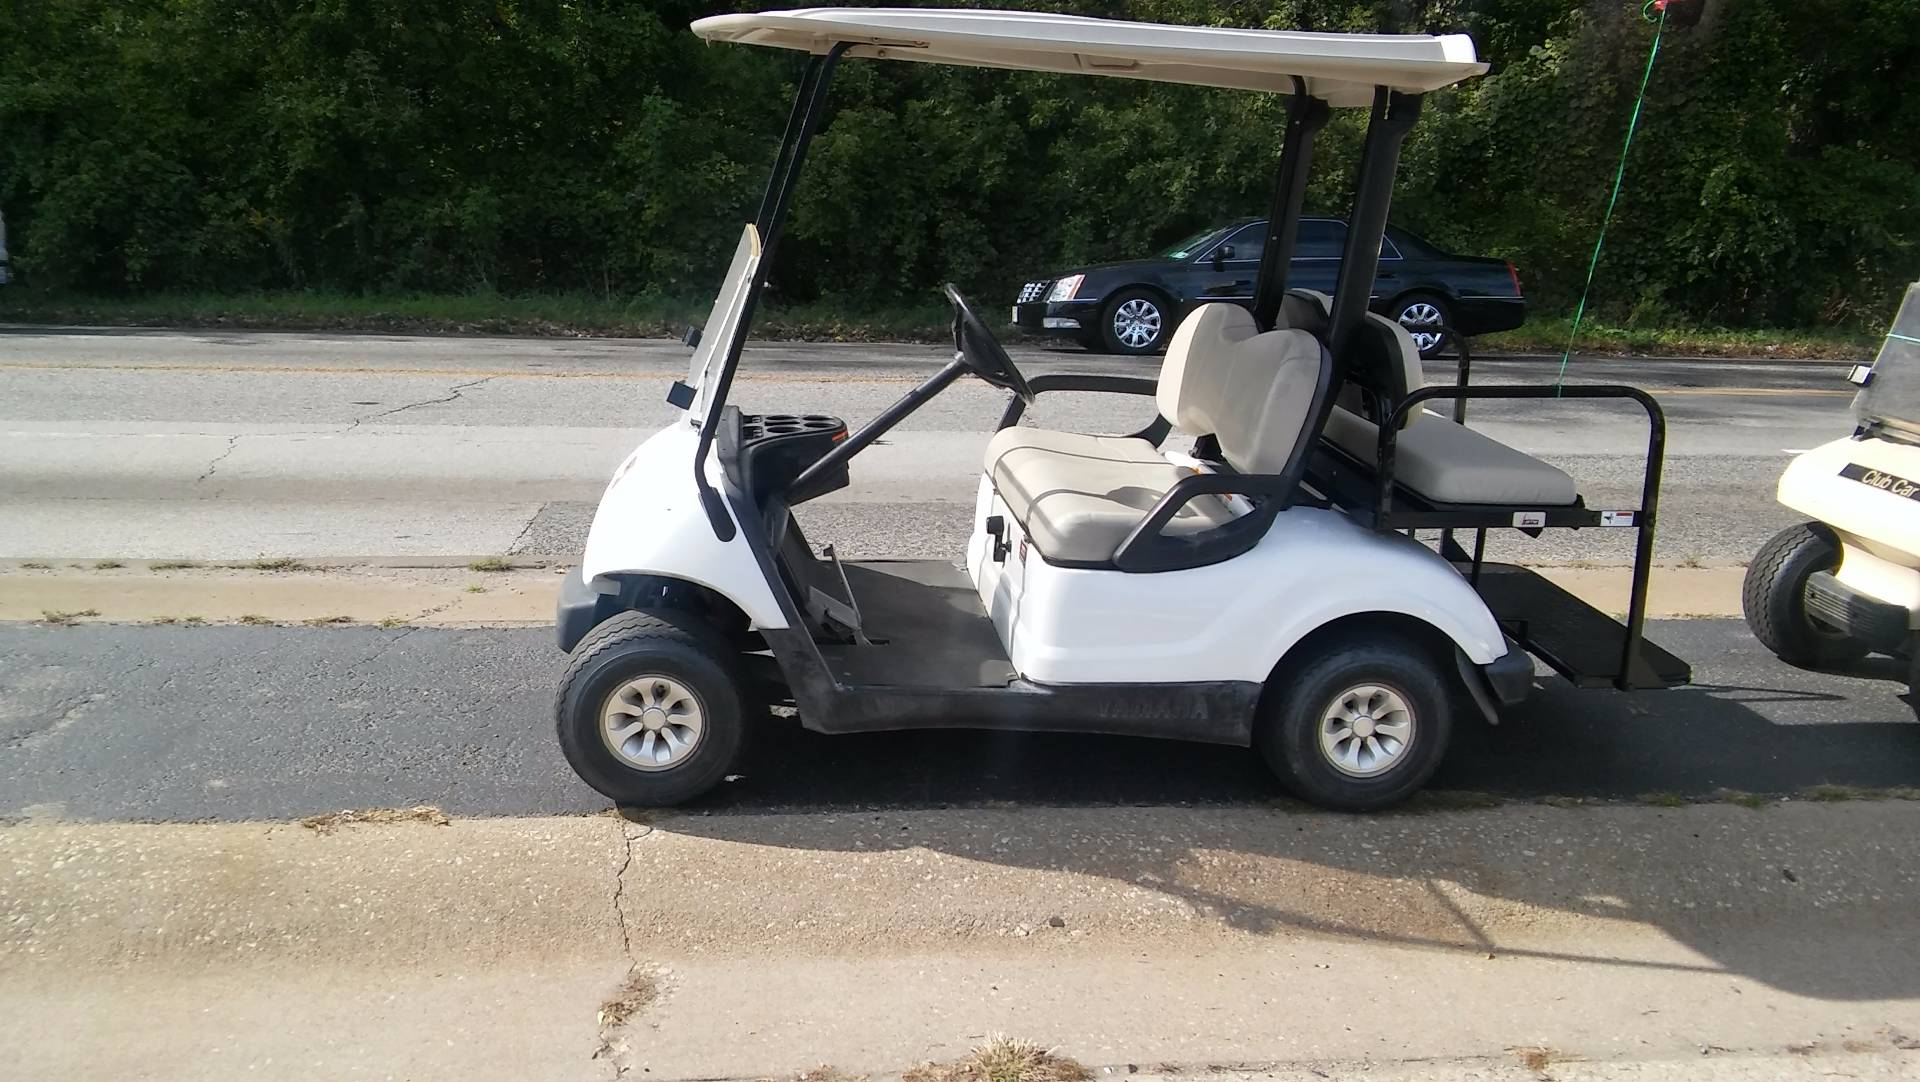 Yamaha Golf Cart History on gasoline carts, used carts, ezgo carts, yamaha side by side, custom lifted carts, yamaha passenger carts, yamaha electric carts, gas powered carts, yamaha gas carts, yamaha trailers, yamaha utility,